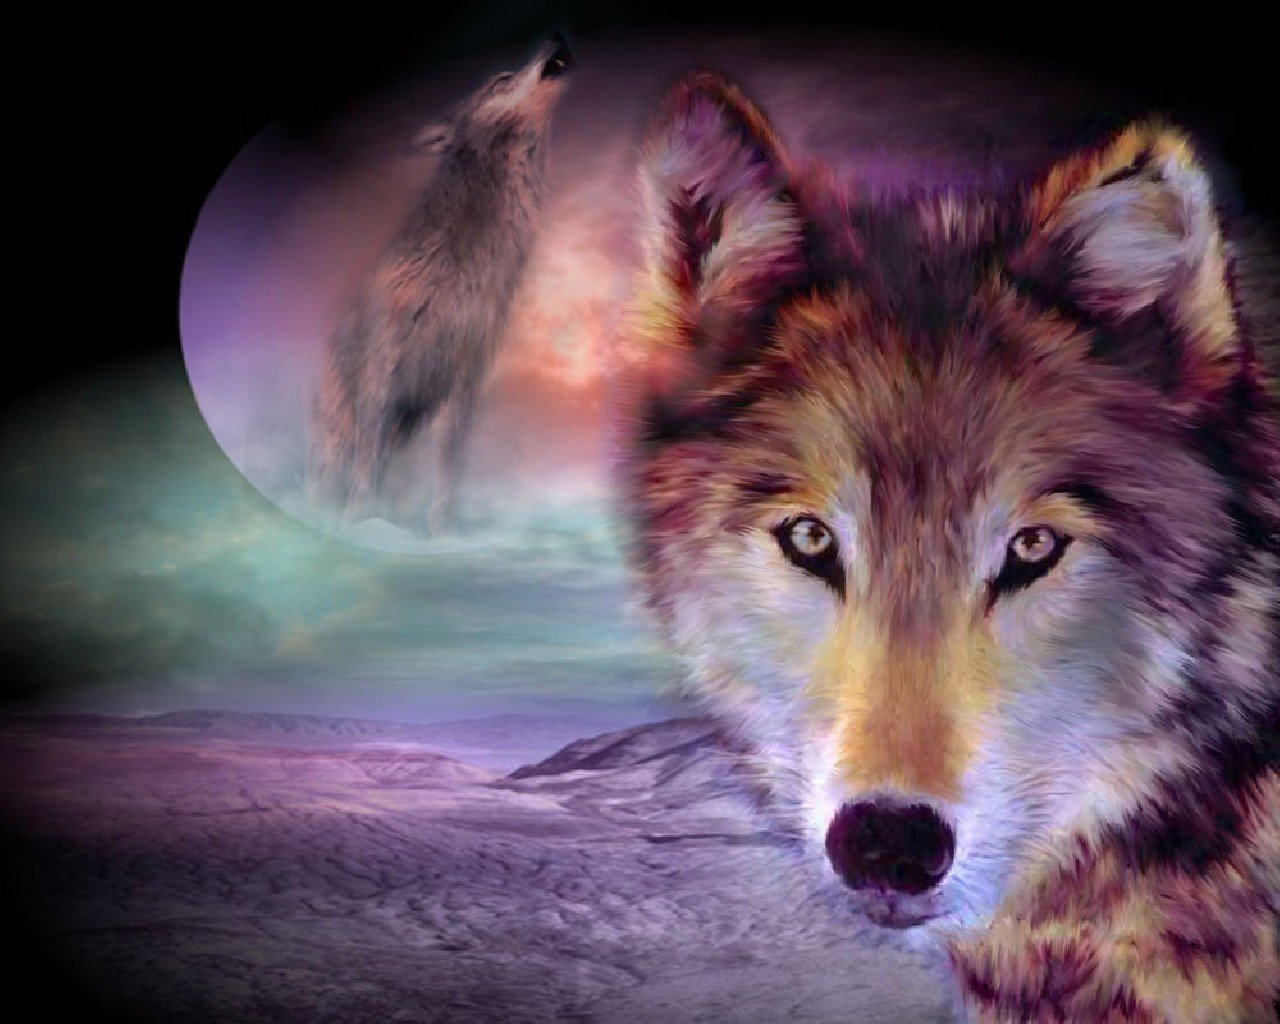 Wolf Wallpaper 10957 Hd Wallpapers in Animals   Imagesci 1280x1024